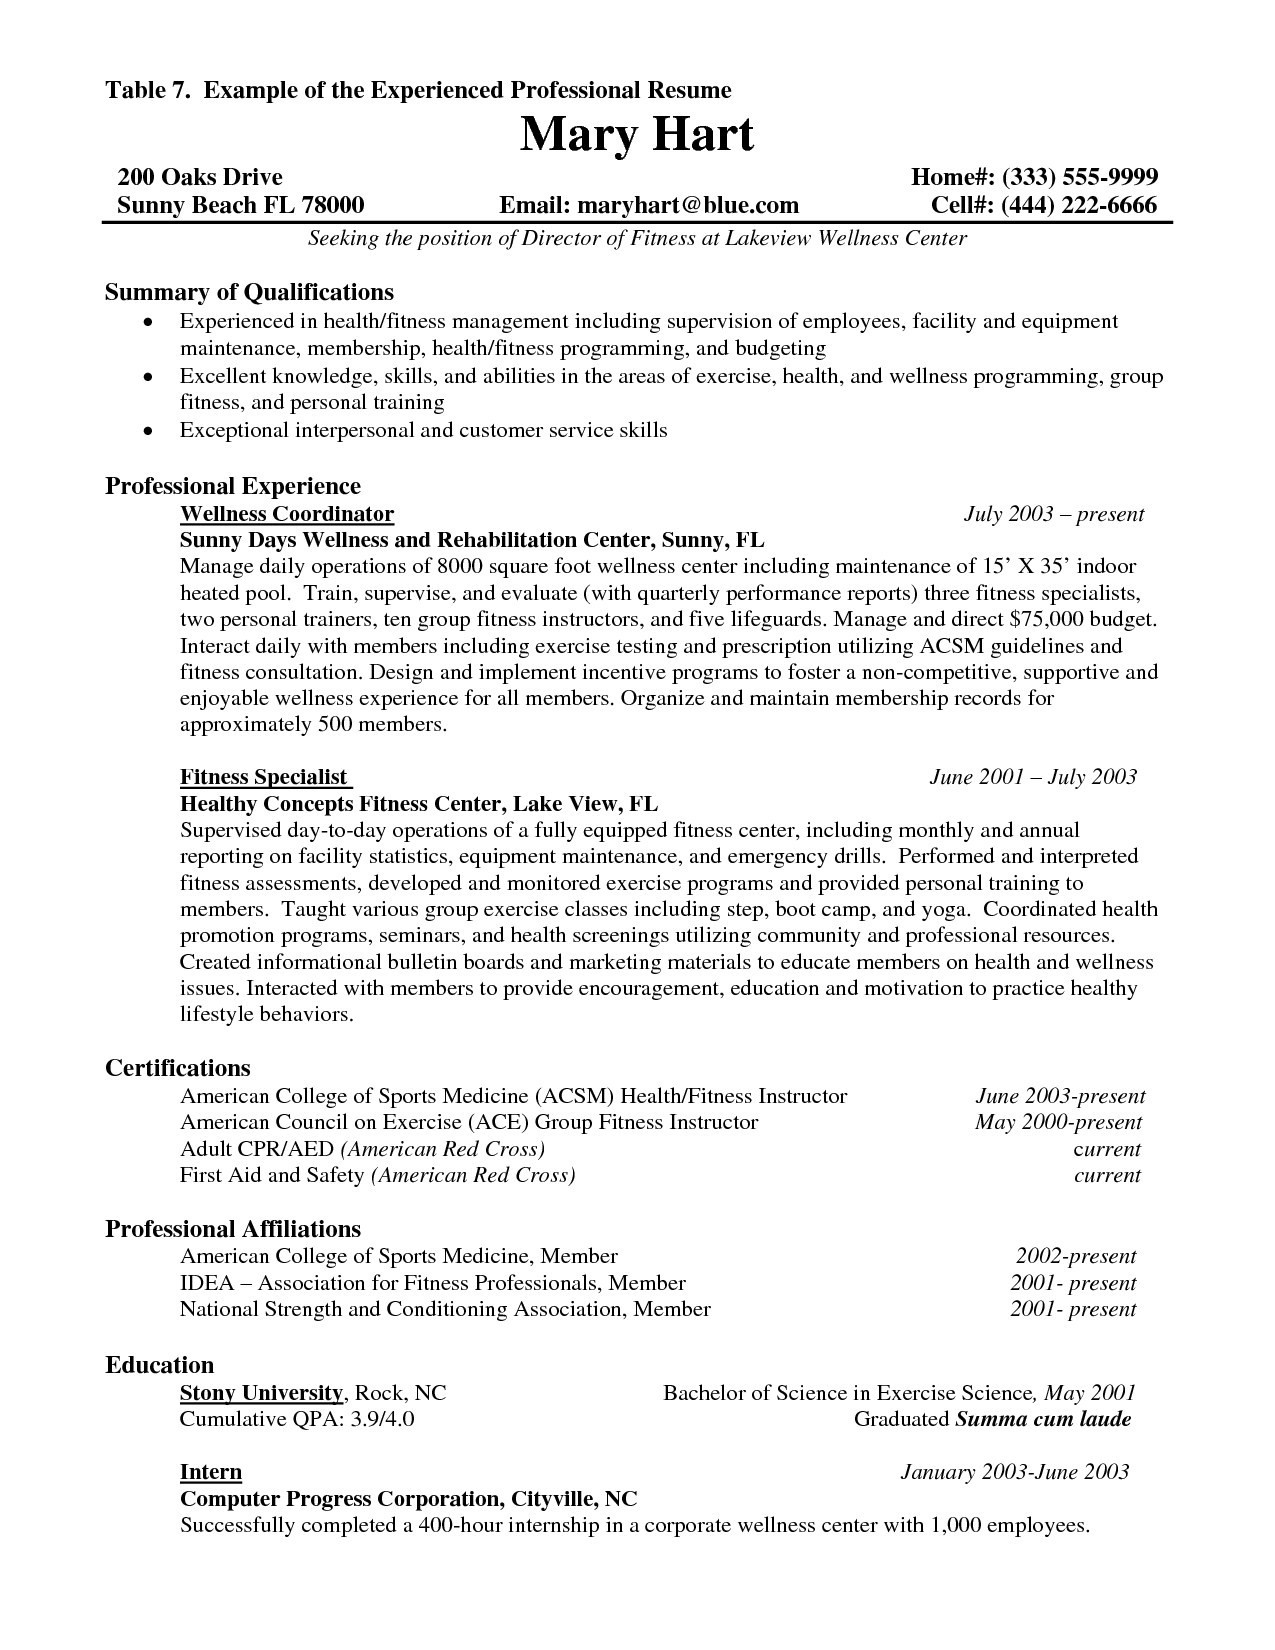 Cover Letter Template Accounting - Resume Template for College Graduate Ideas Accounting Internship